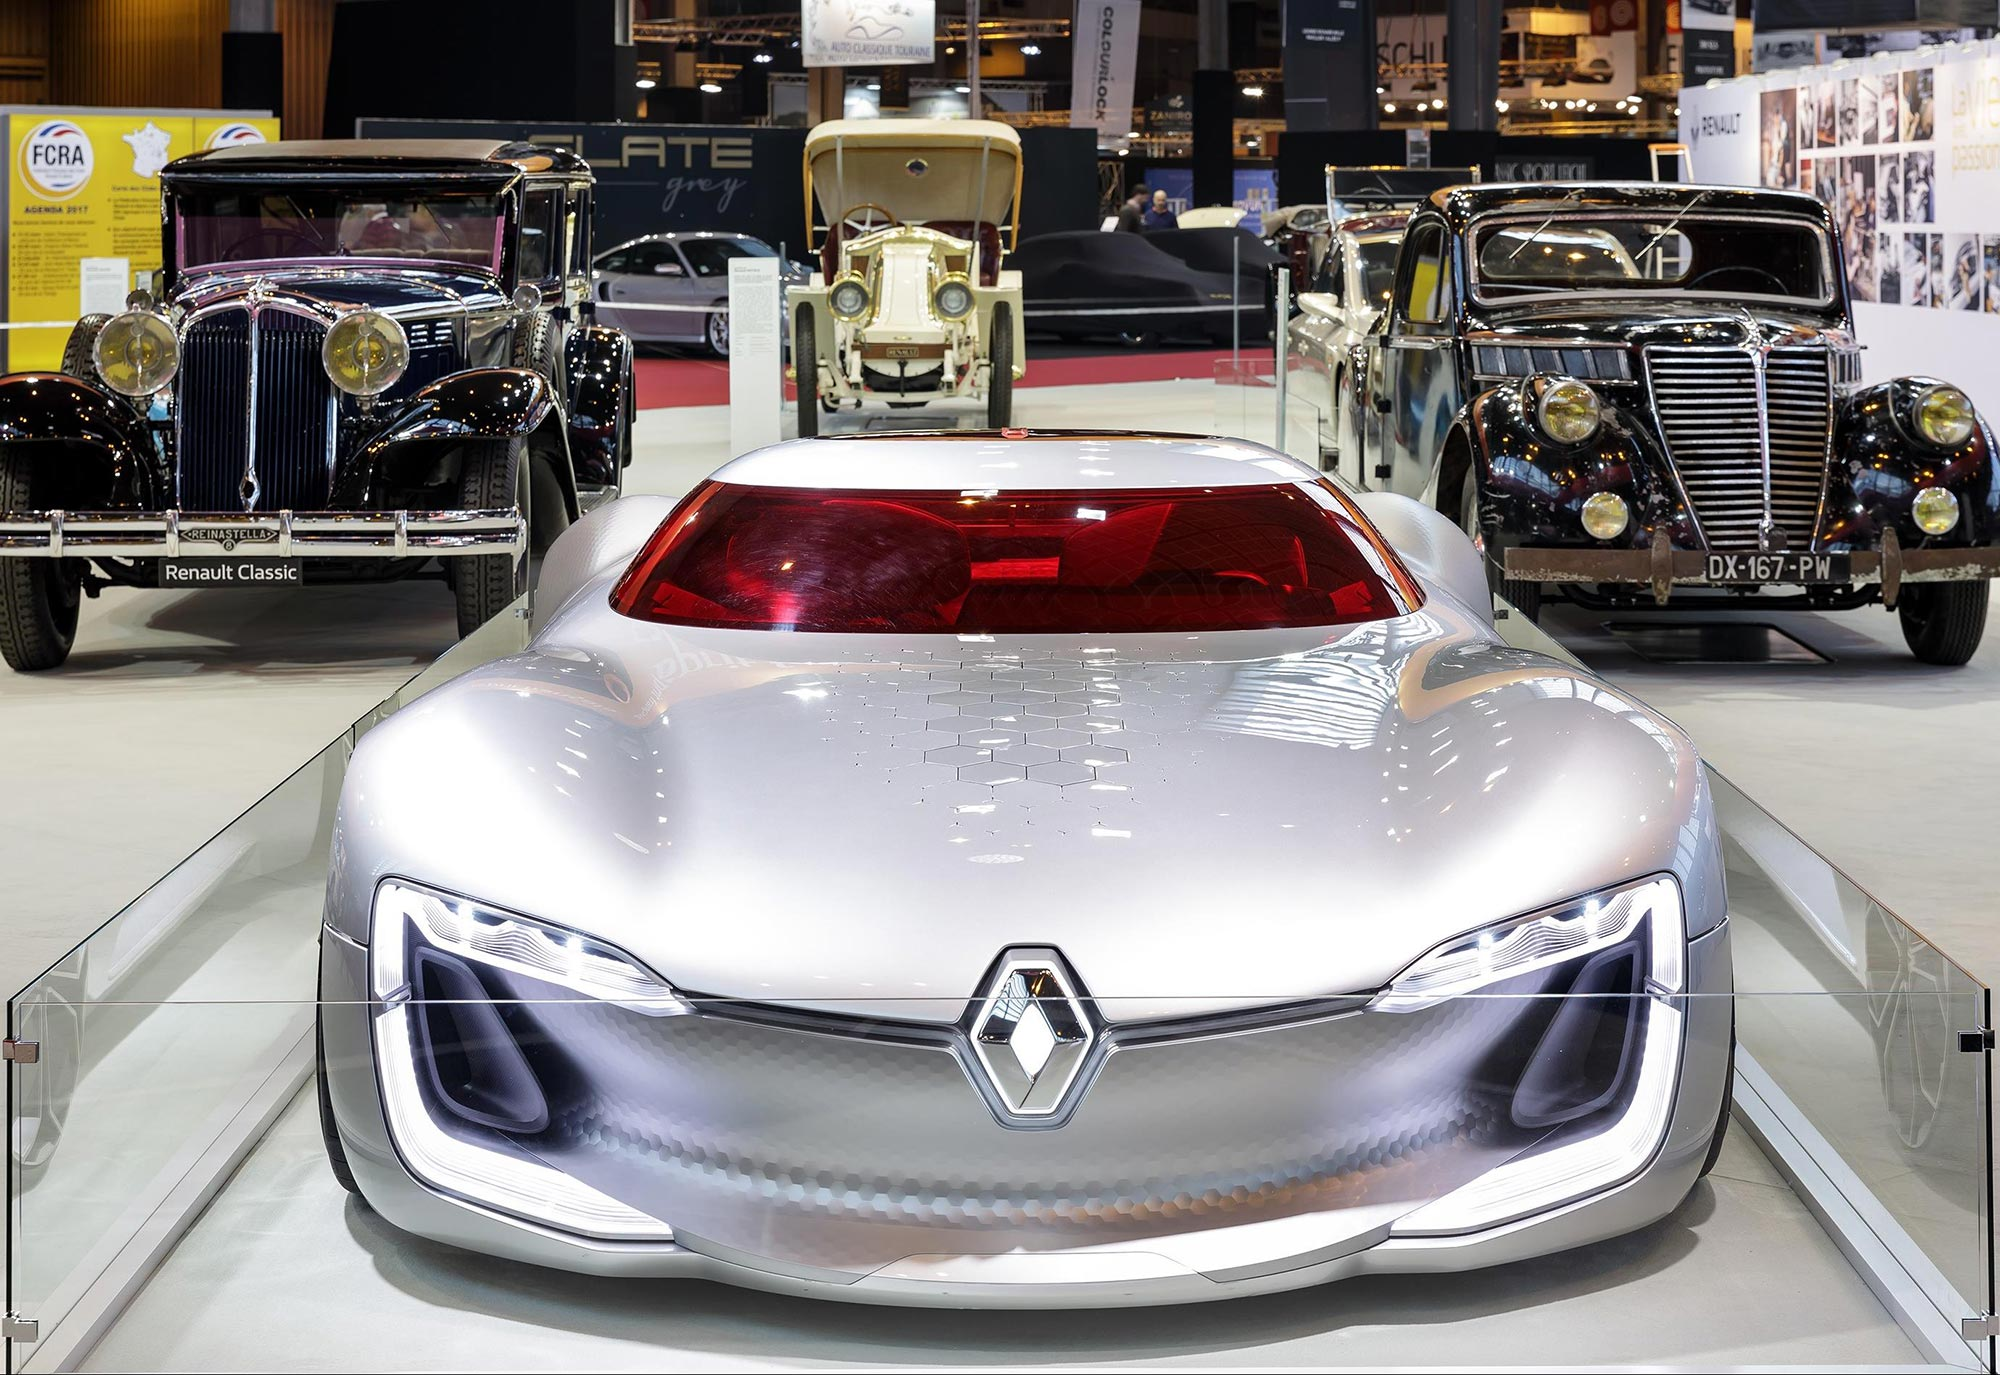 Renault_TreZor_concept_2016_at_Retromobile_2017_(2).jpg